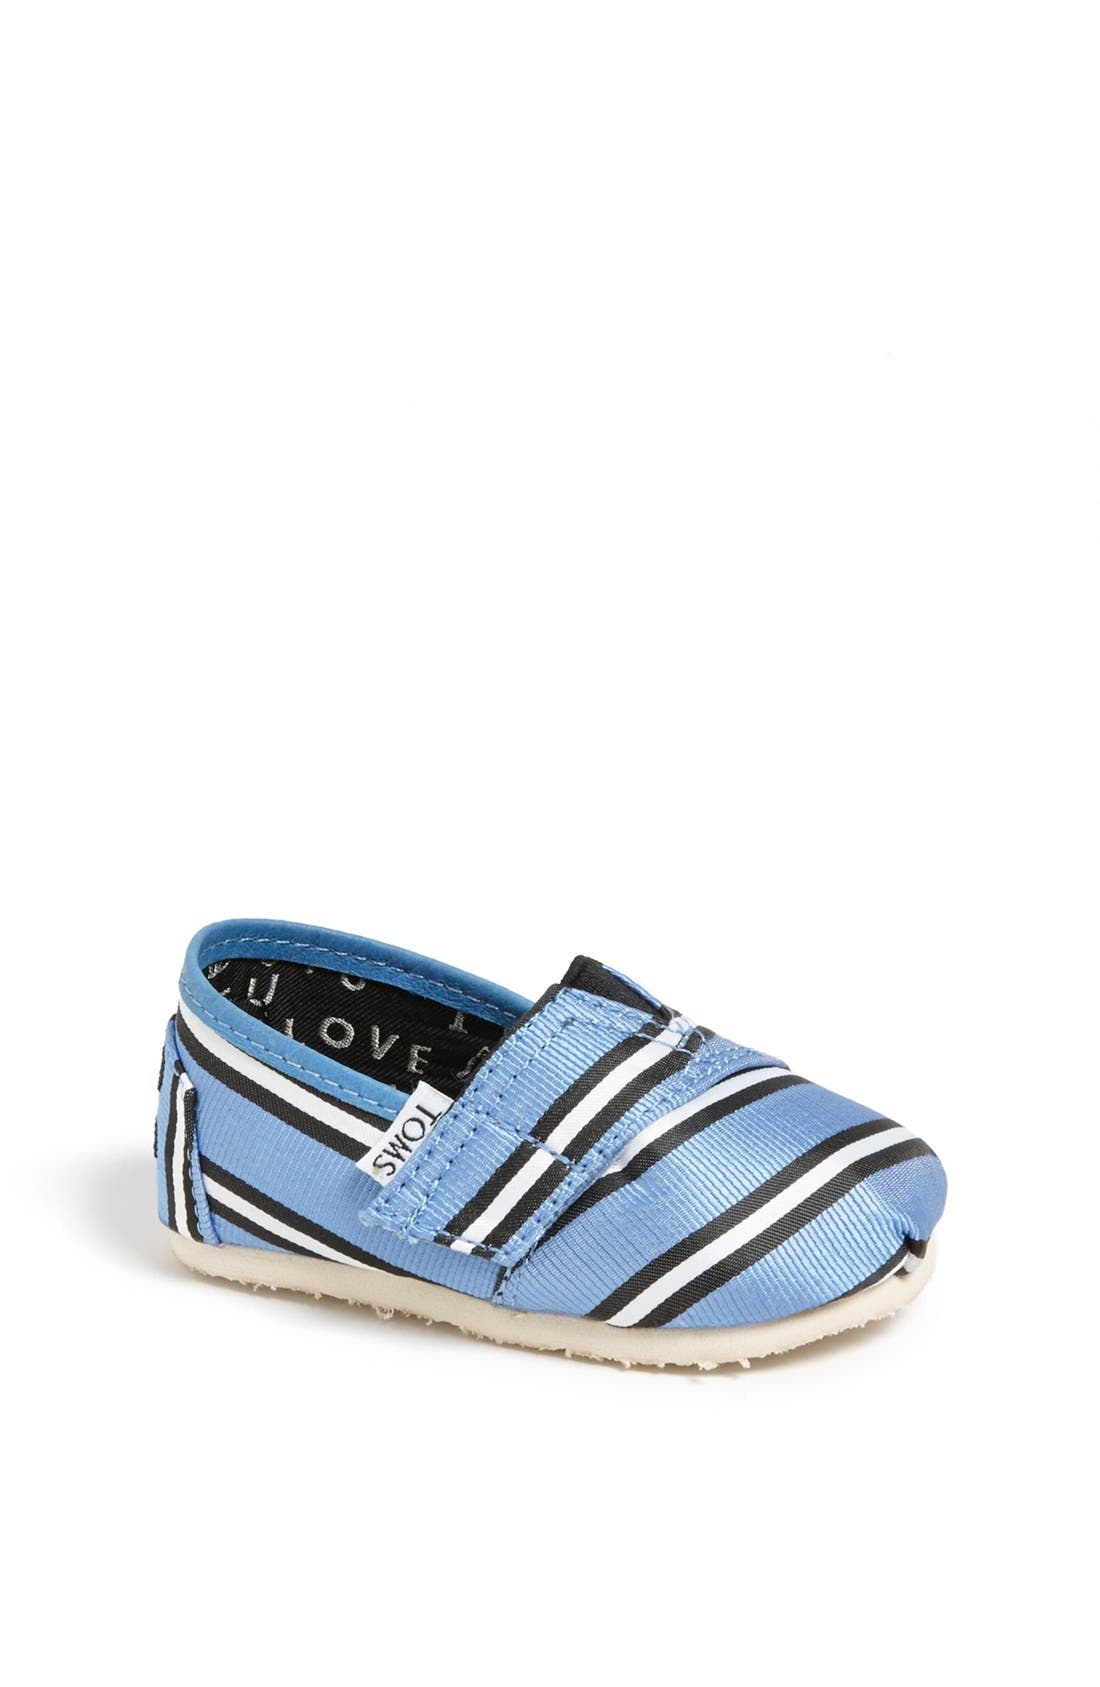 Alternate Image 1 Selected - TOMS 'Classic Tiny - Tabitha Simmons' Slip-On (Baby, Walker & Toddler)